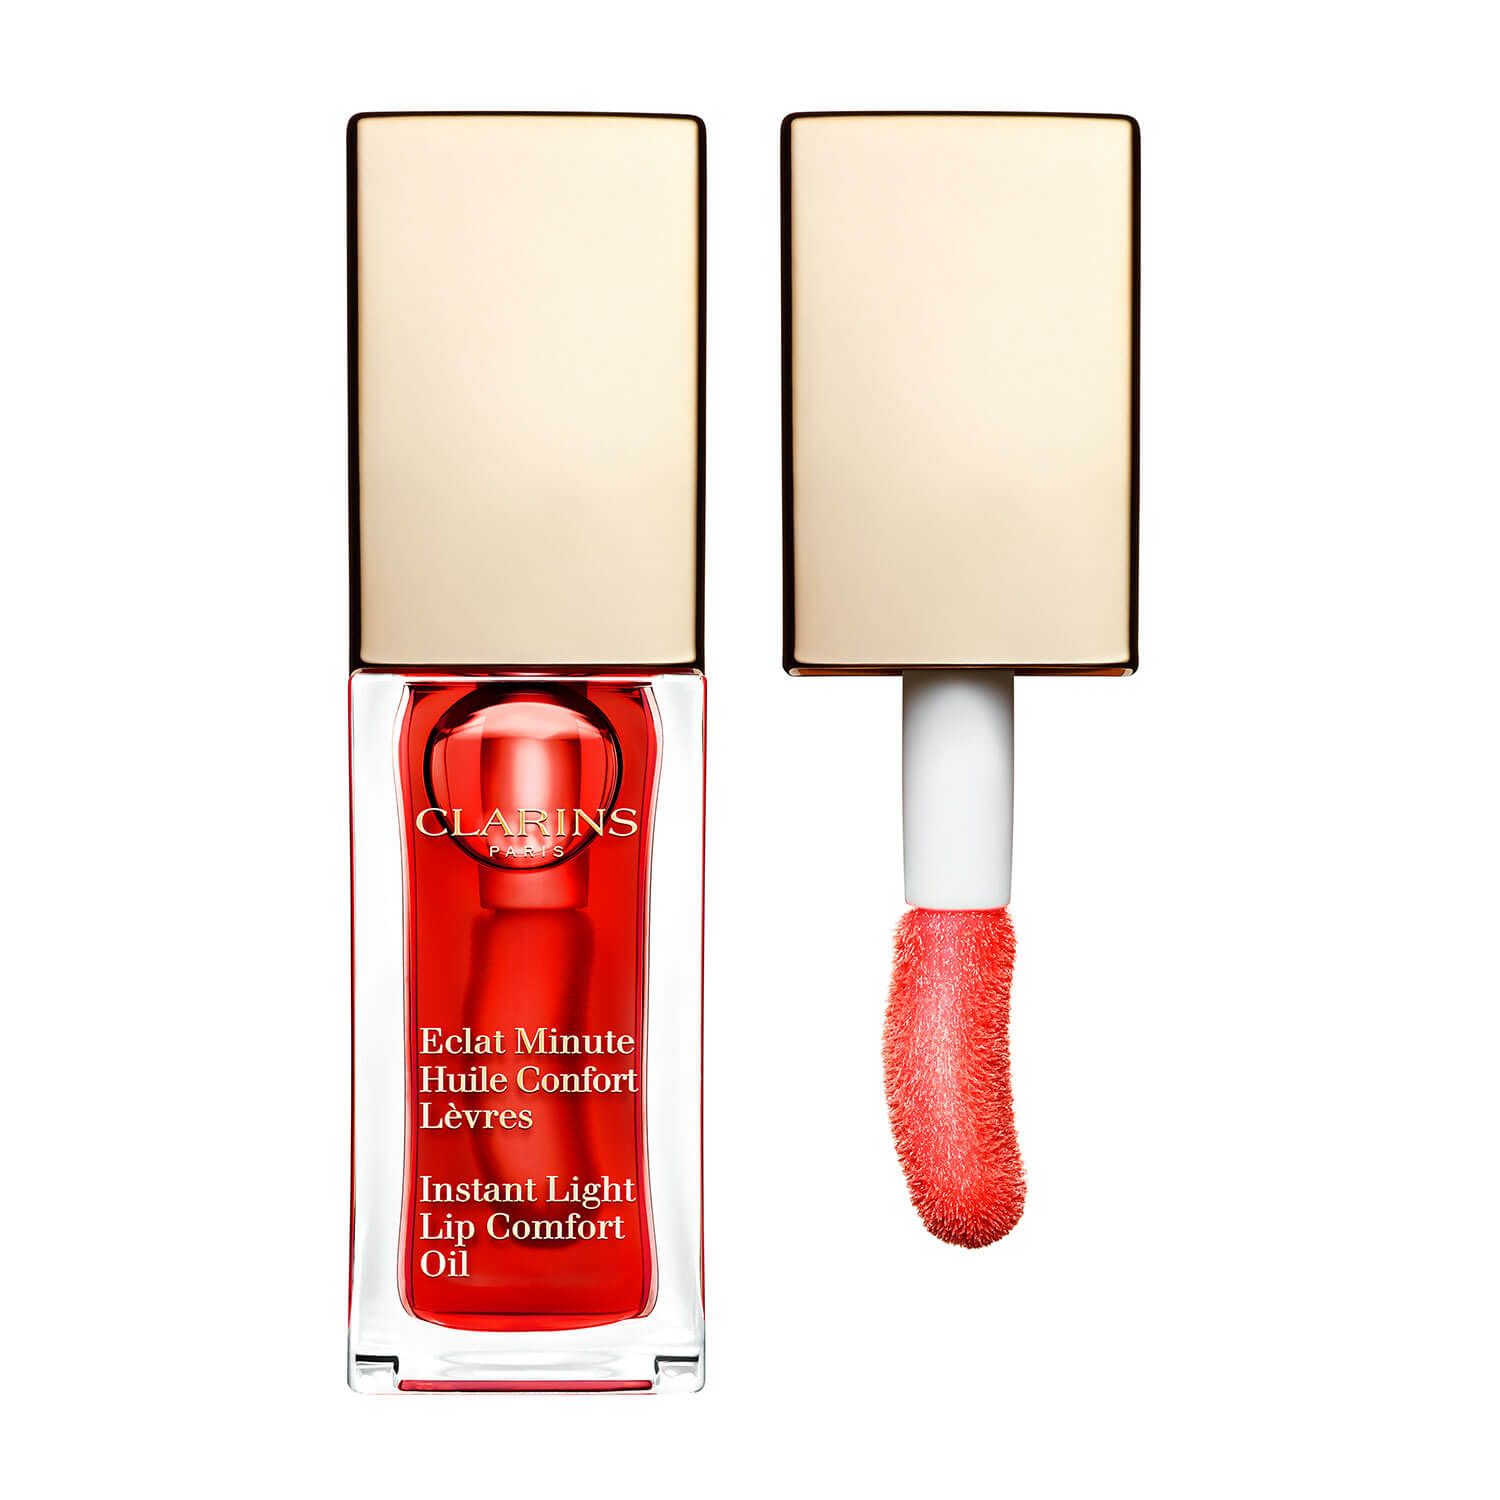 Eclat Minute - Huile Confort Lèvres Red Berry 03